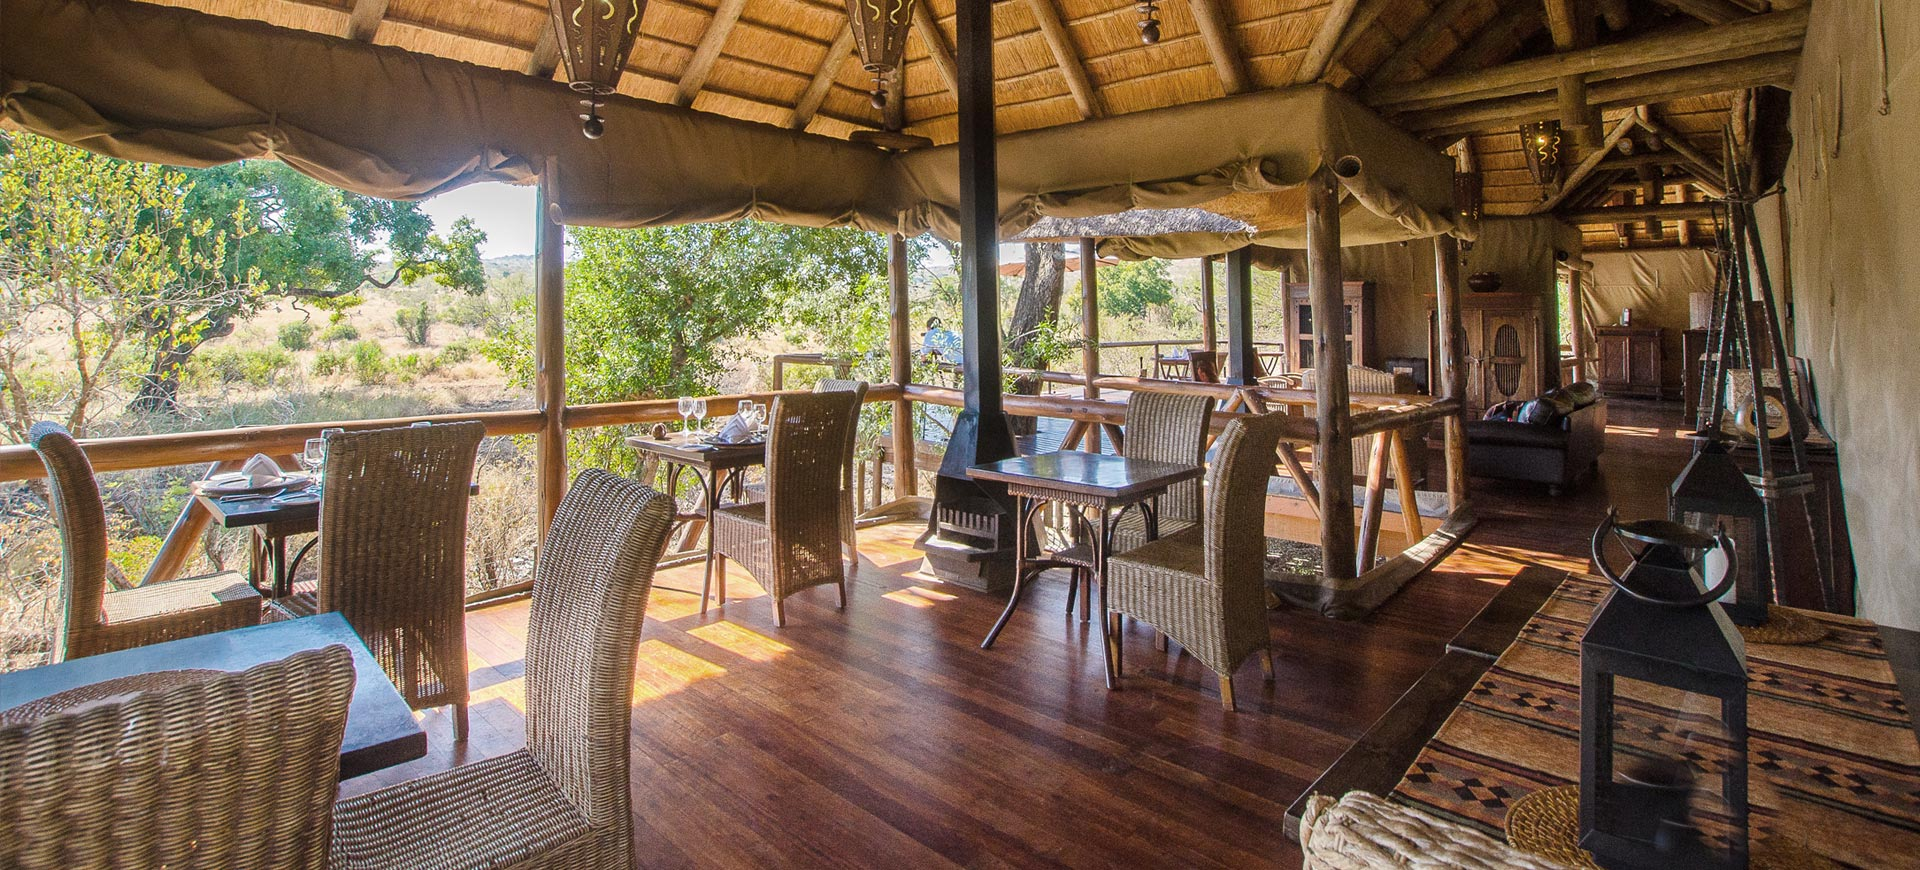 Camp Shonga Tented Camp